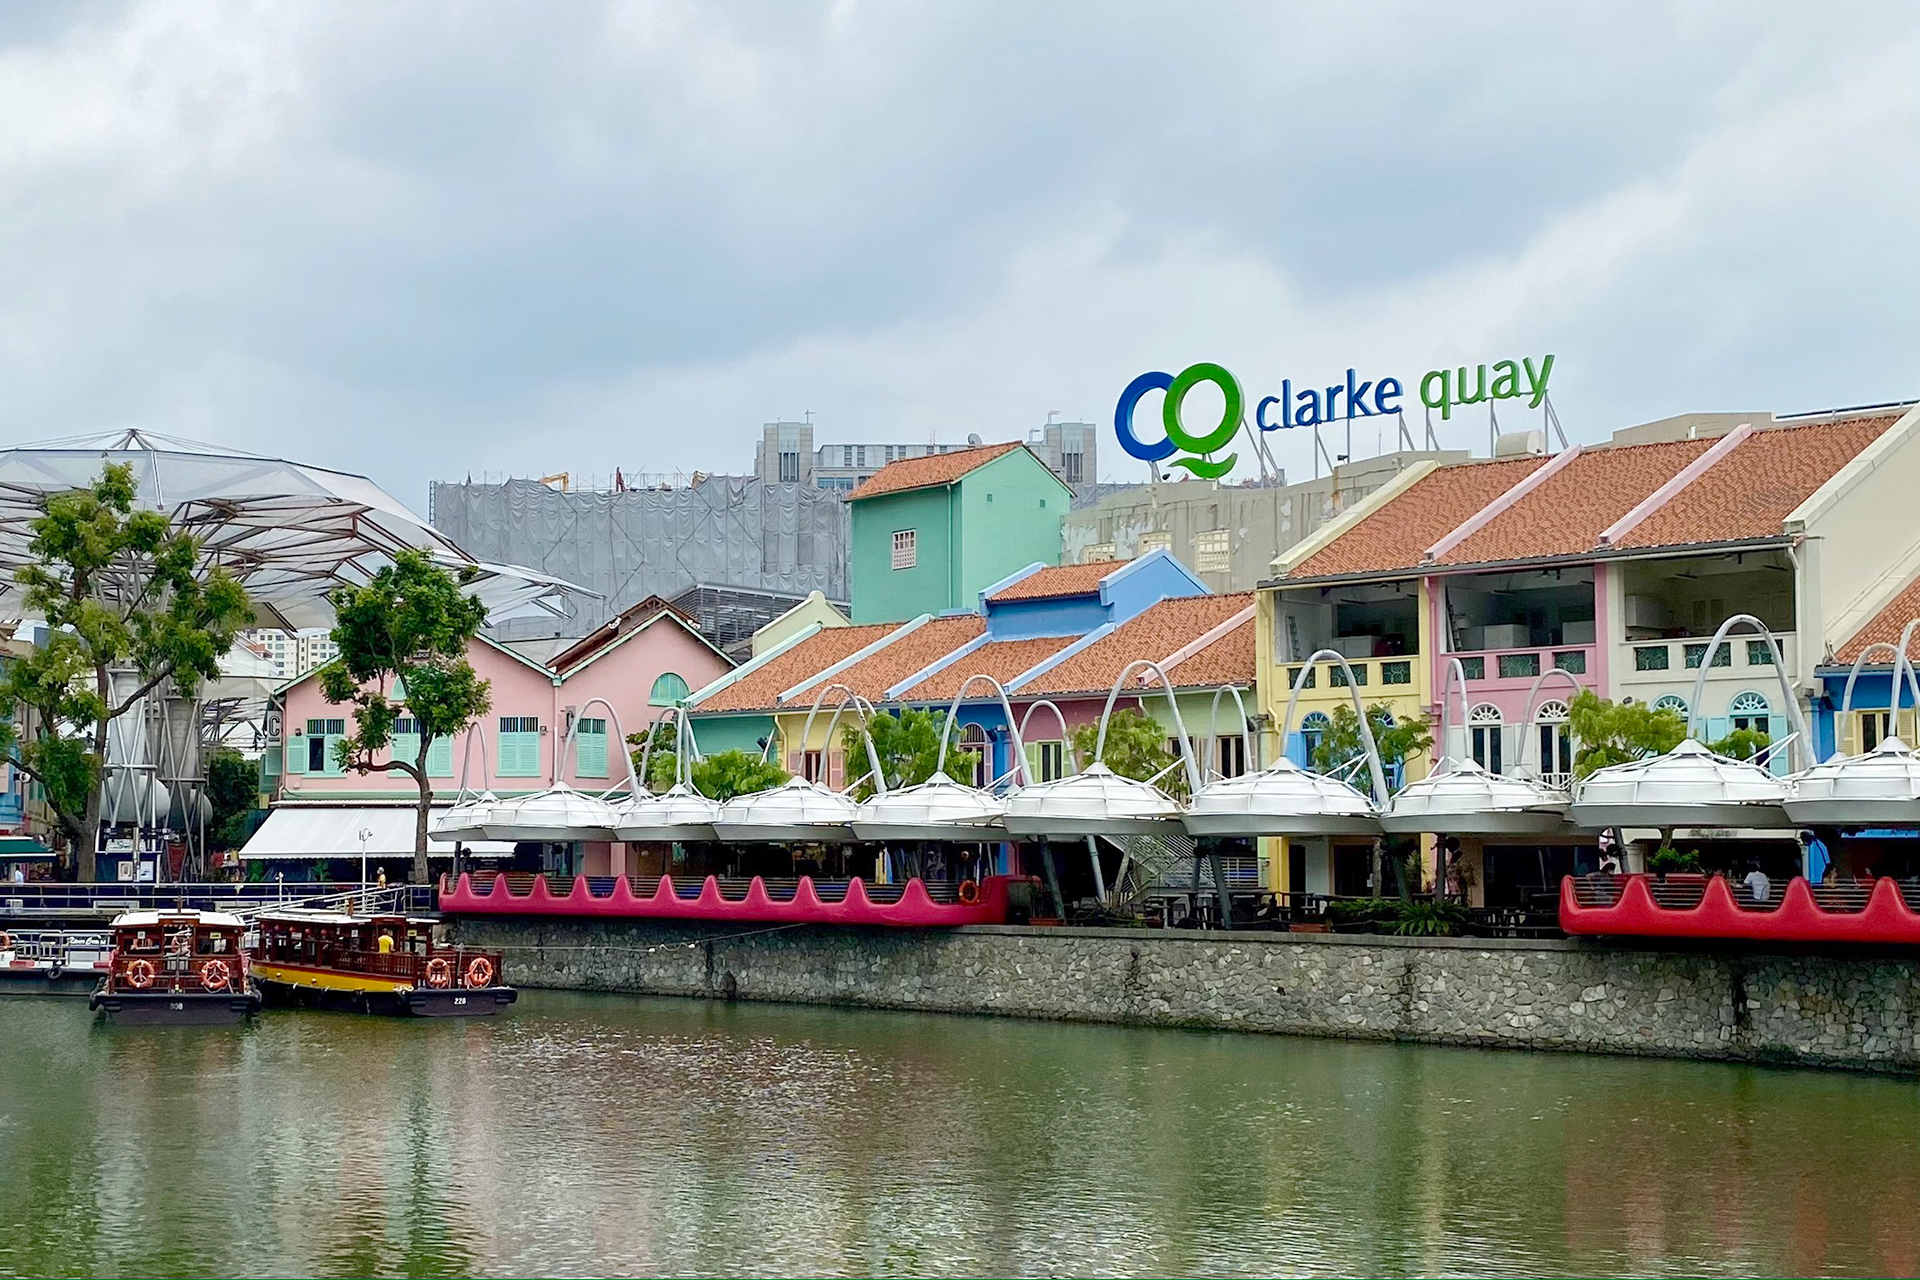 Bodies of 2 men found in Singapore River close to Clarke Quay